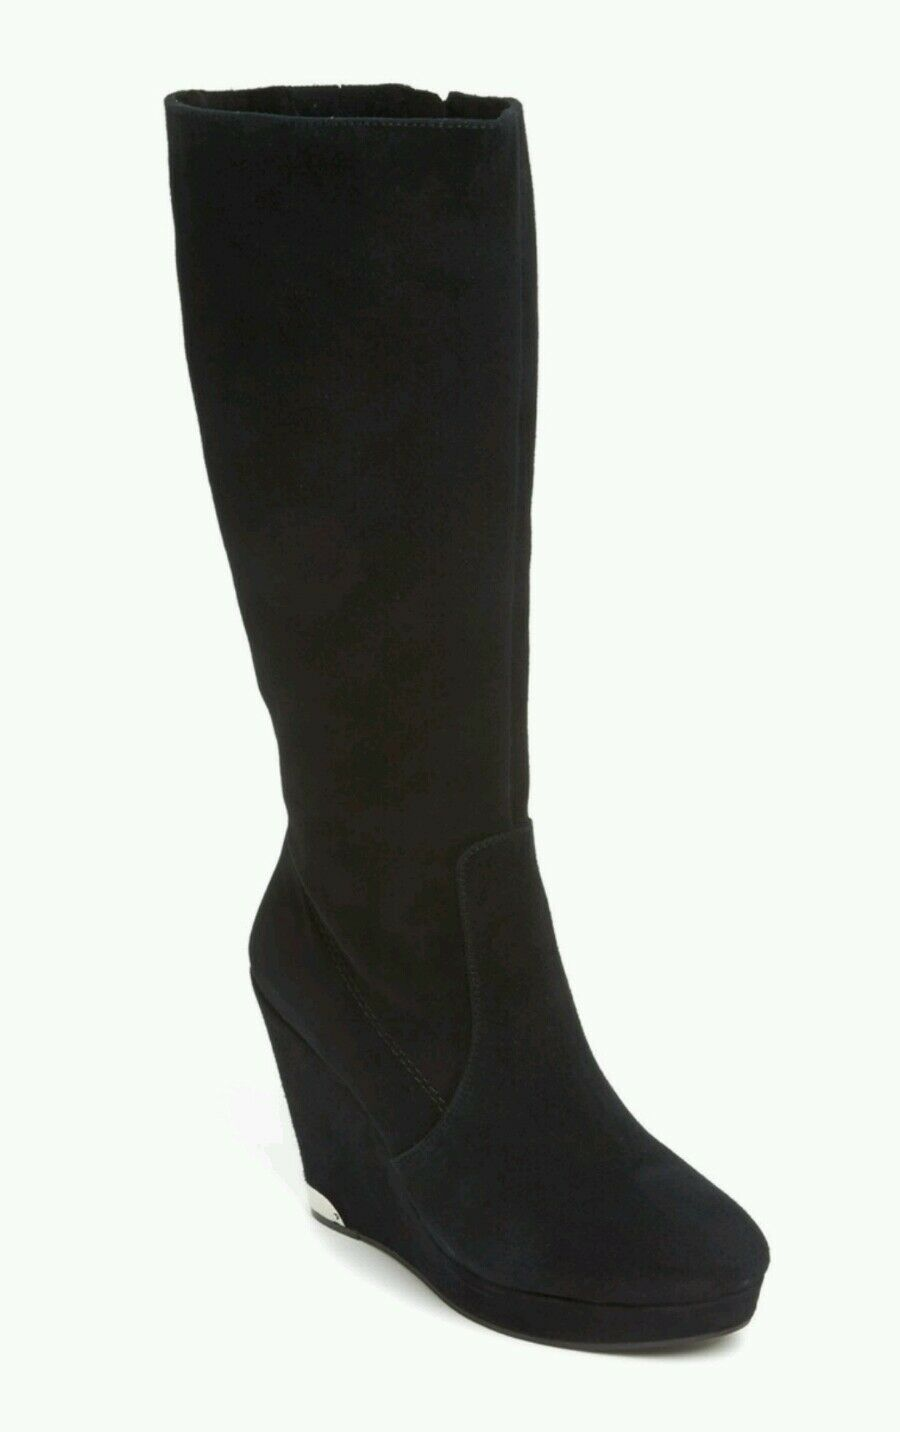 NEW VINCE CAMUTO KESSIA $280 TALL EQUESTRIAN BLACK SUEDE WEDGES BOOTS 41 10